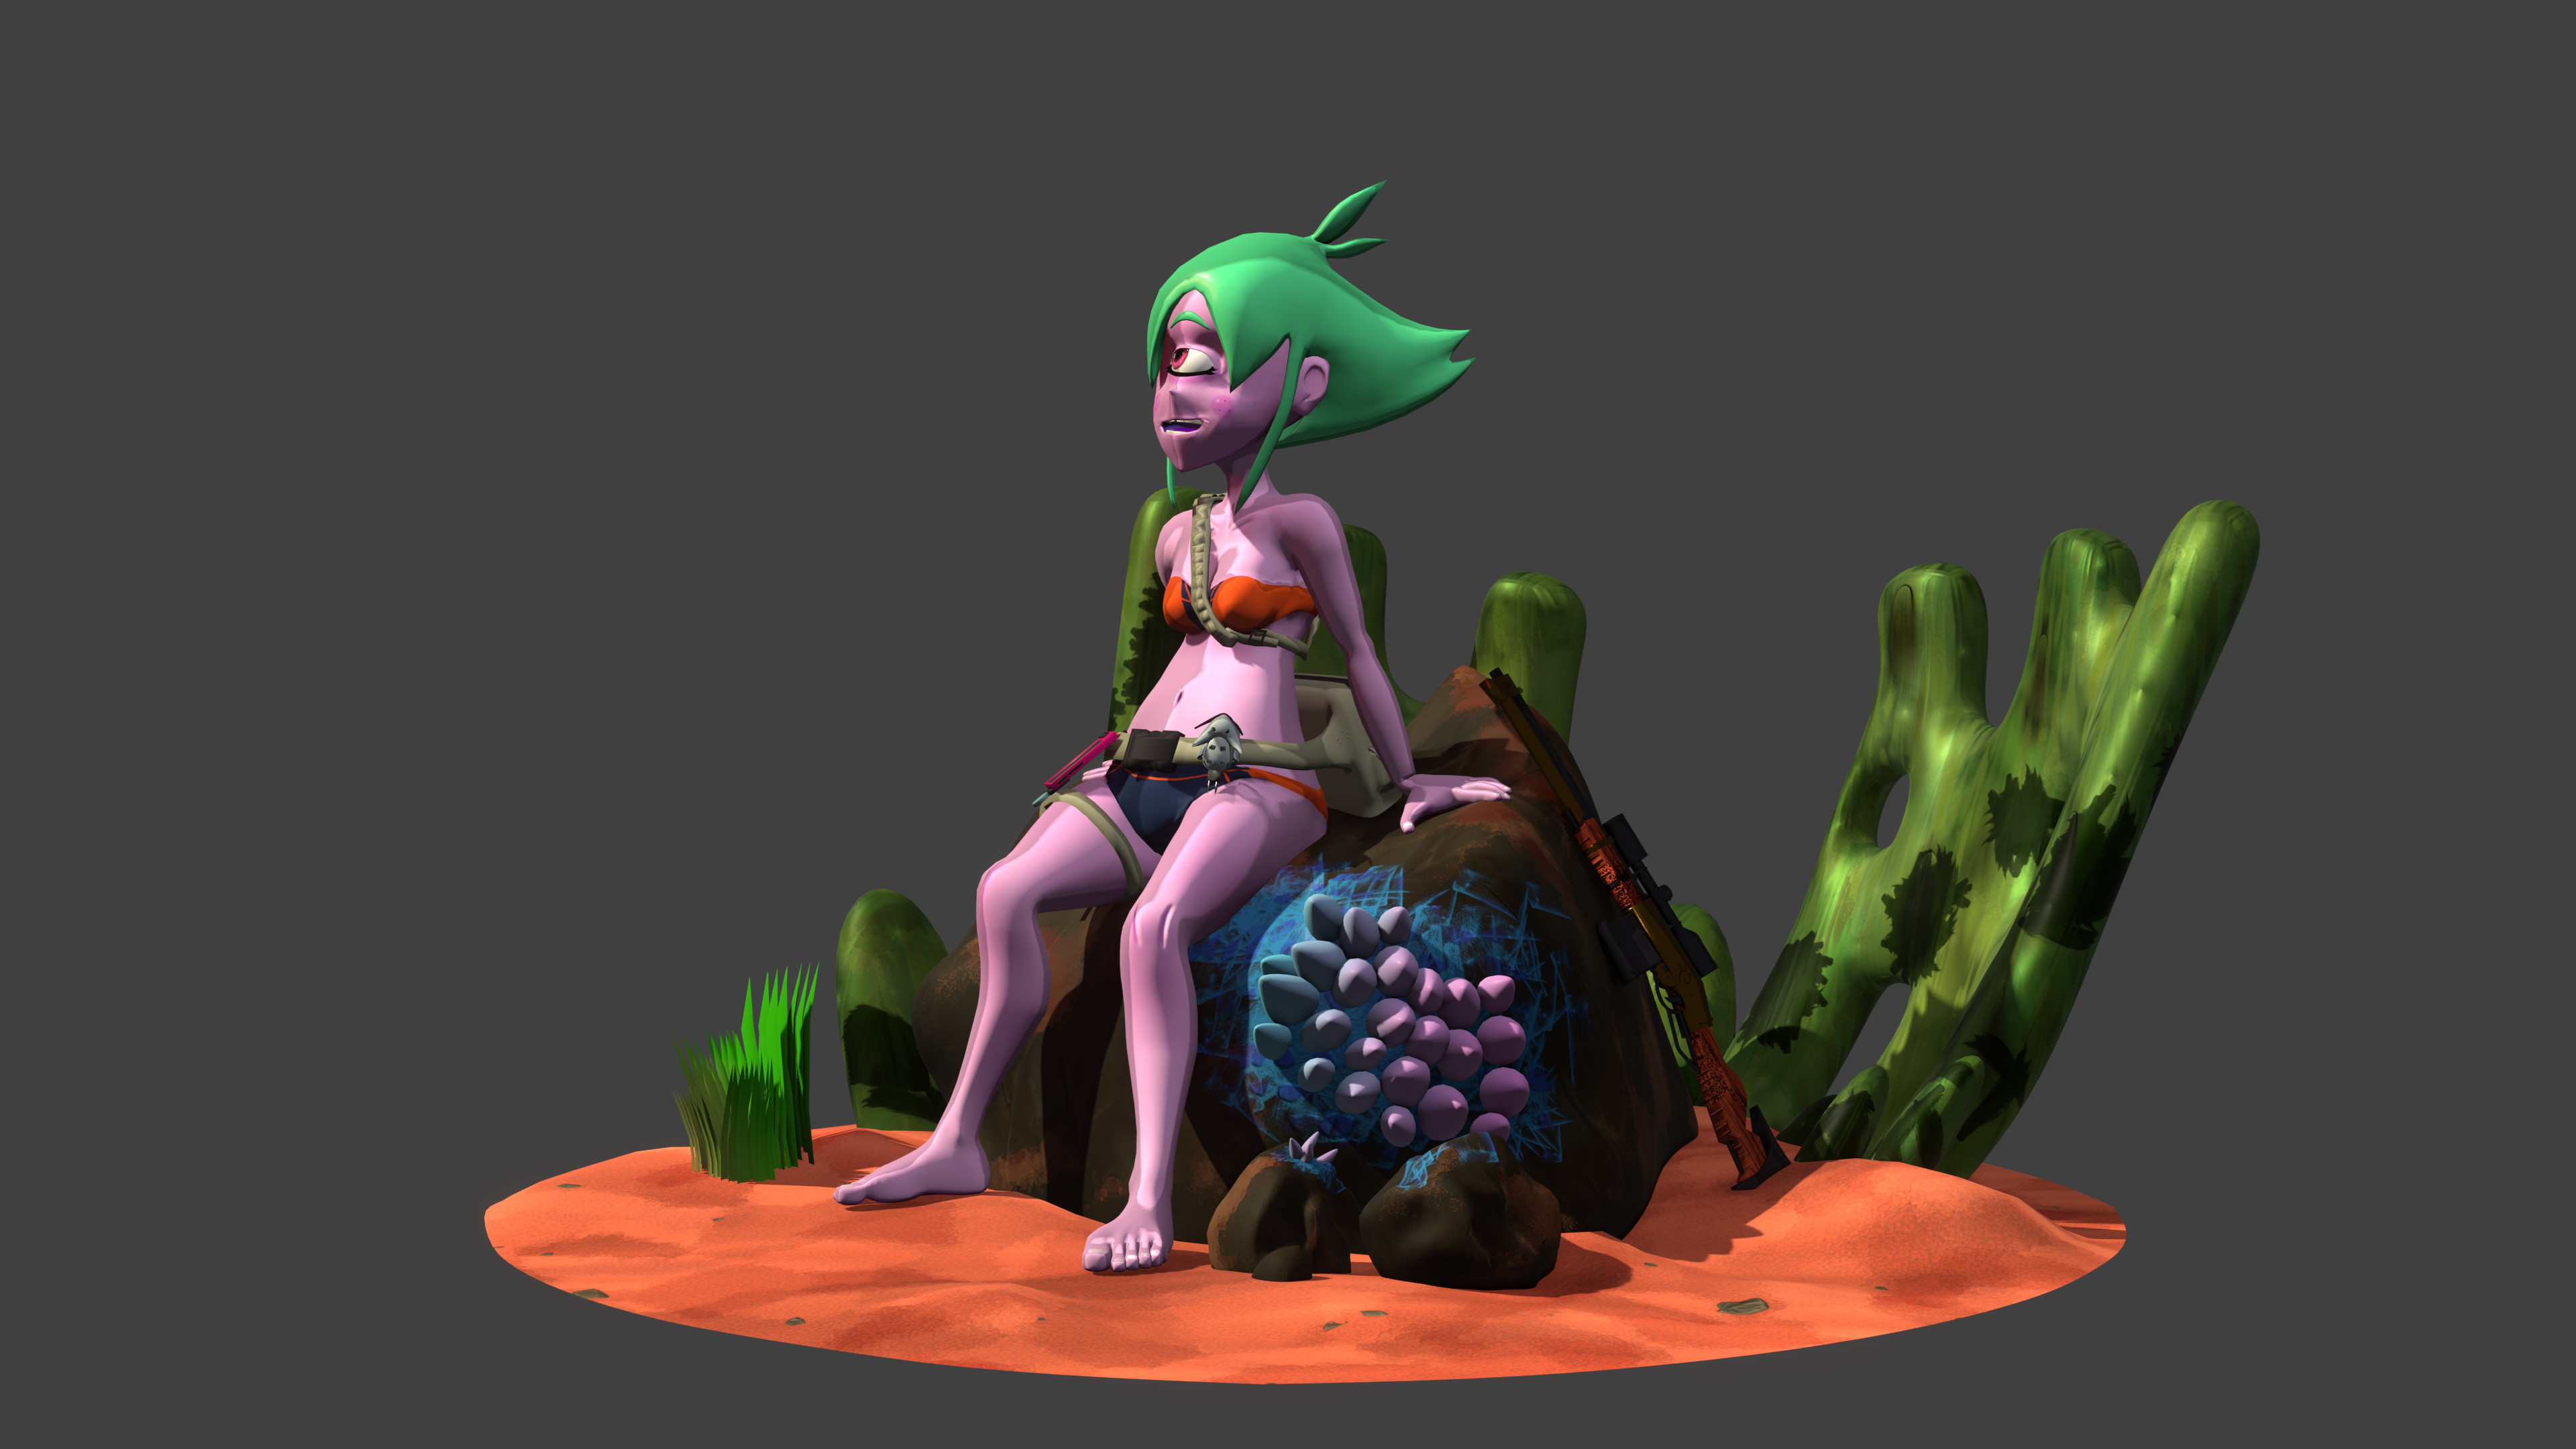 Sitting on an Ayy LMAO rock, with no armor